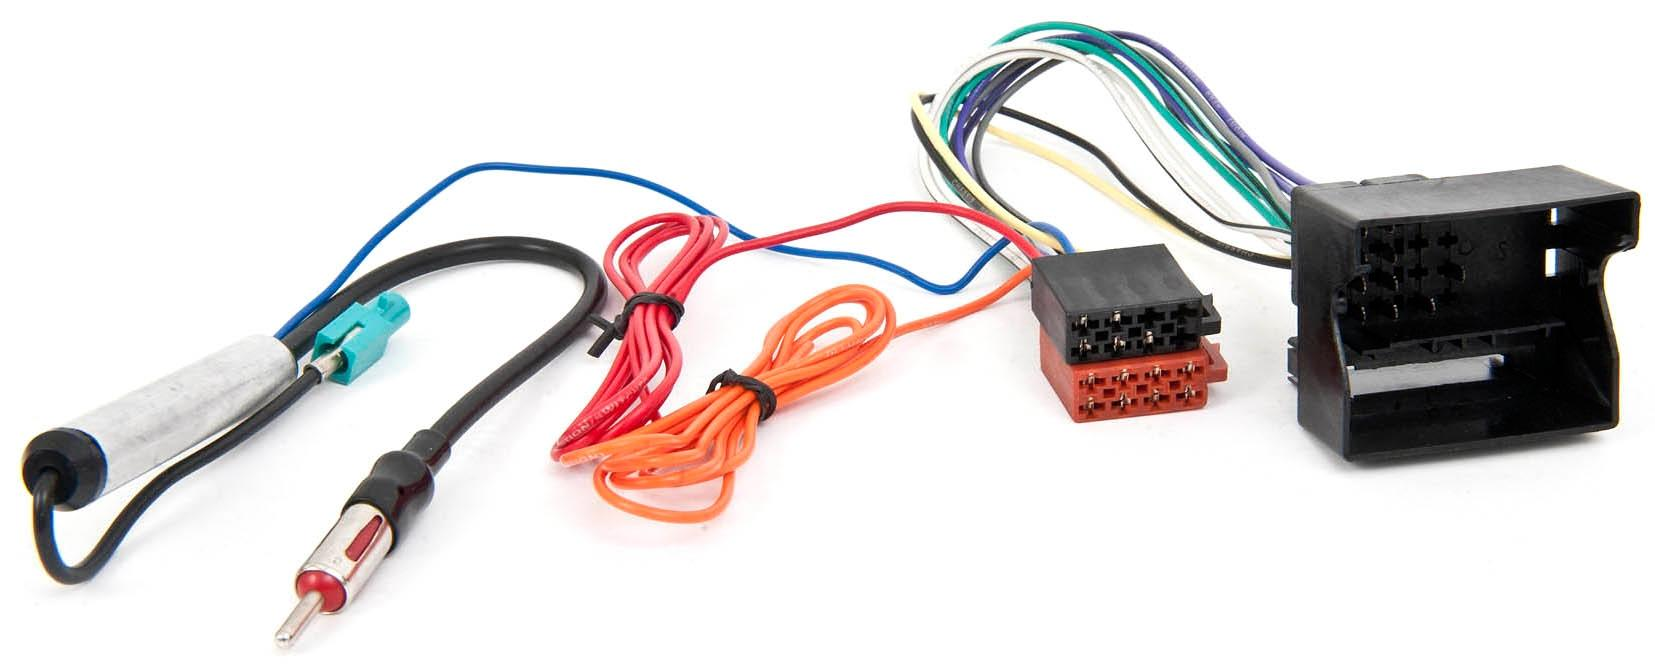 650408?w=637&h=403 autoleads vauxhall astra car audio pc2-85-4 wiring diagram at aneh.co